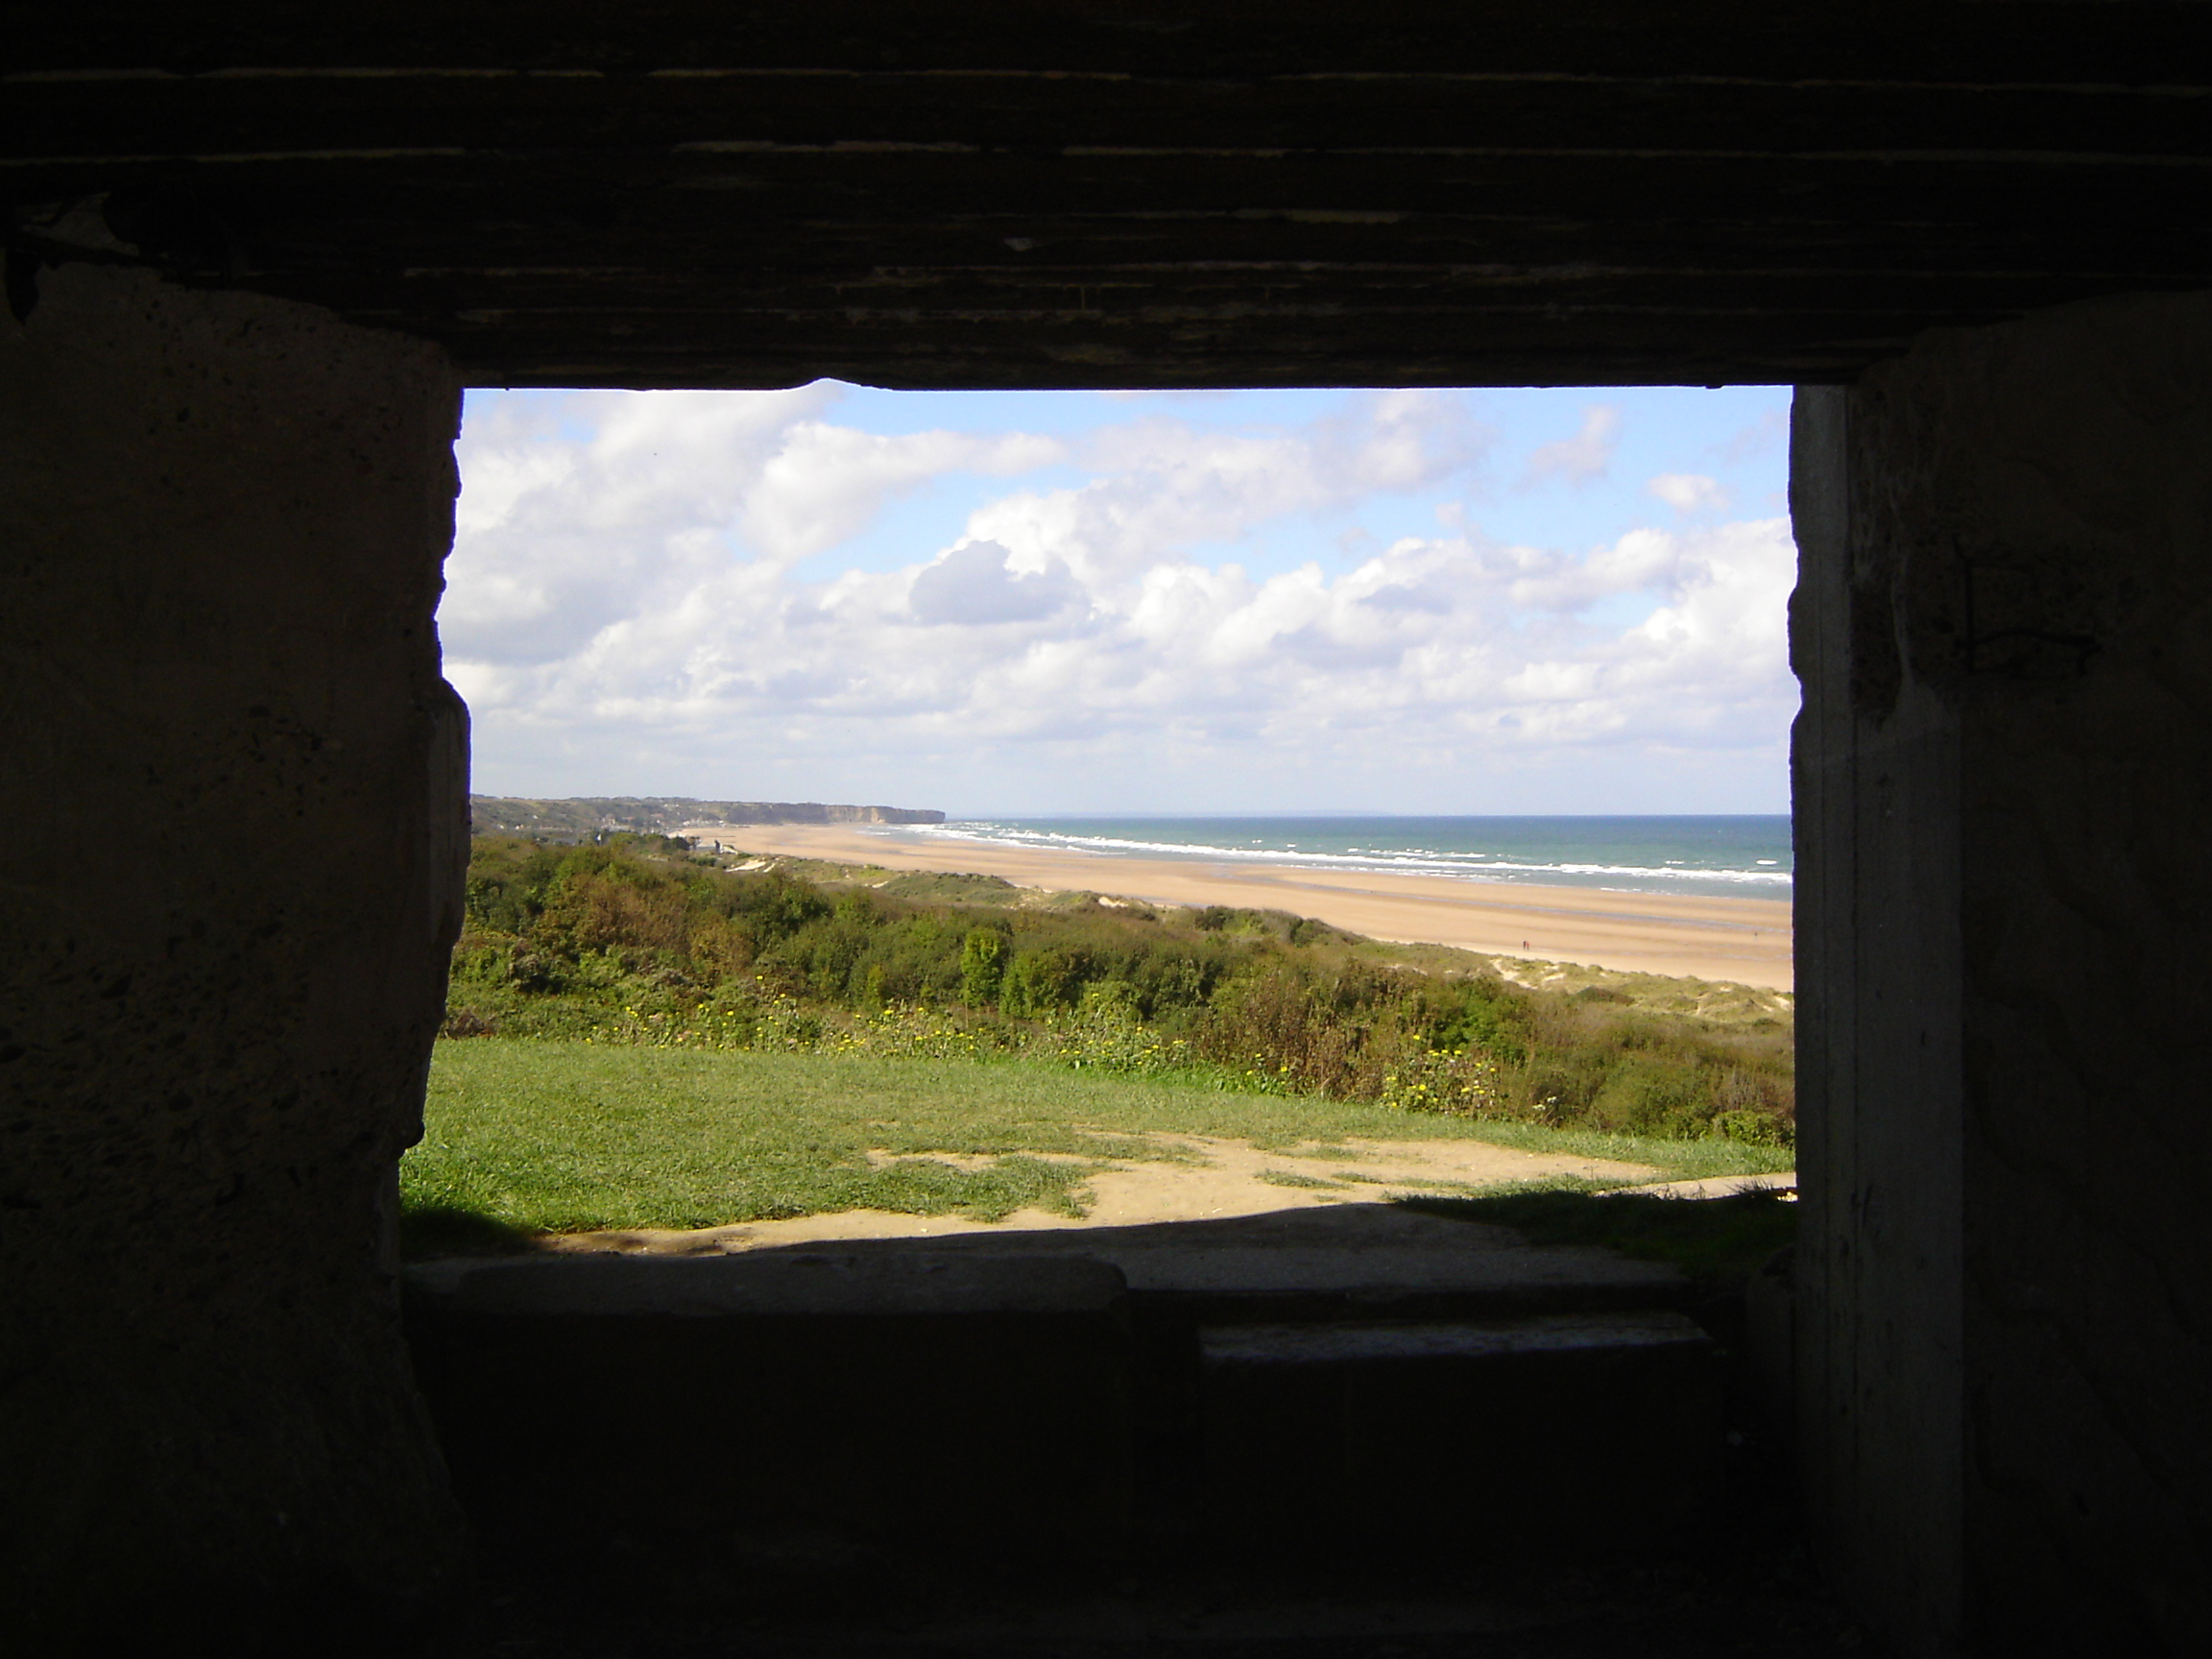 a description of the omaha beach Saving private ryan creative writing it's about 6:30 am on omaha beach, me and my men are packed on boats, preparing for war i can see the fear and anxiety on the soldiers faces and how stress they are, huddled together like a tin of sardines.